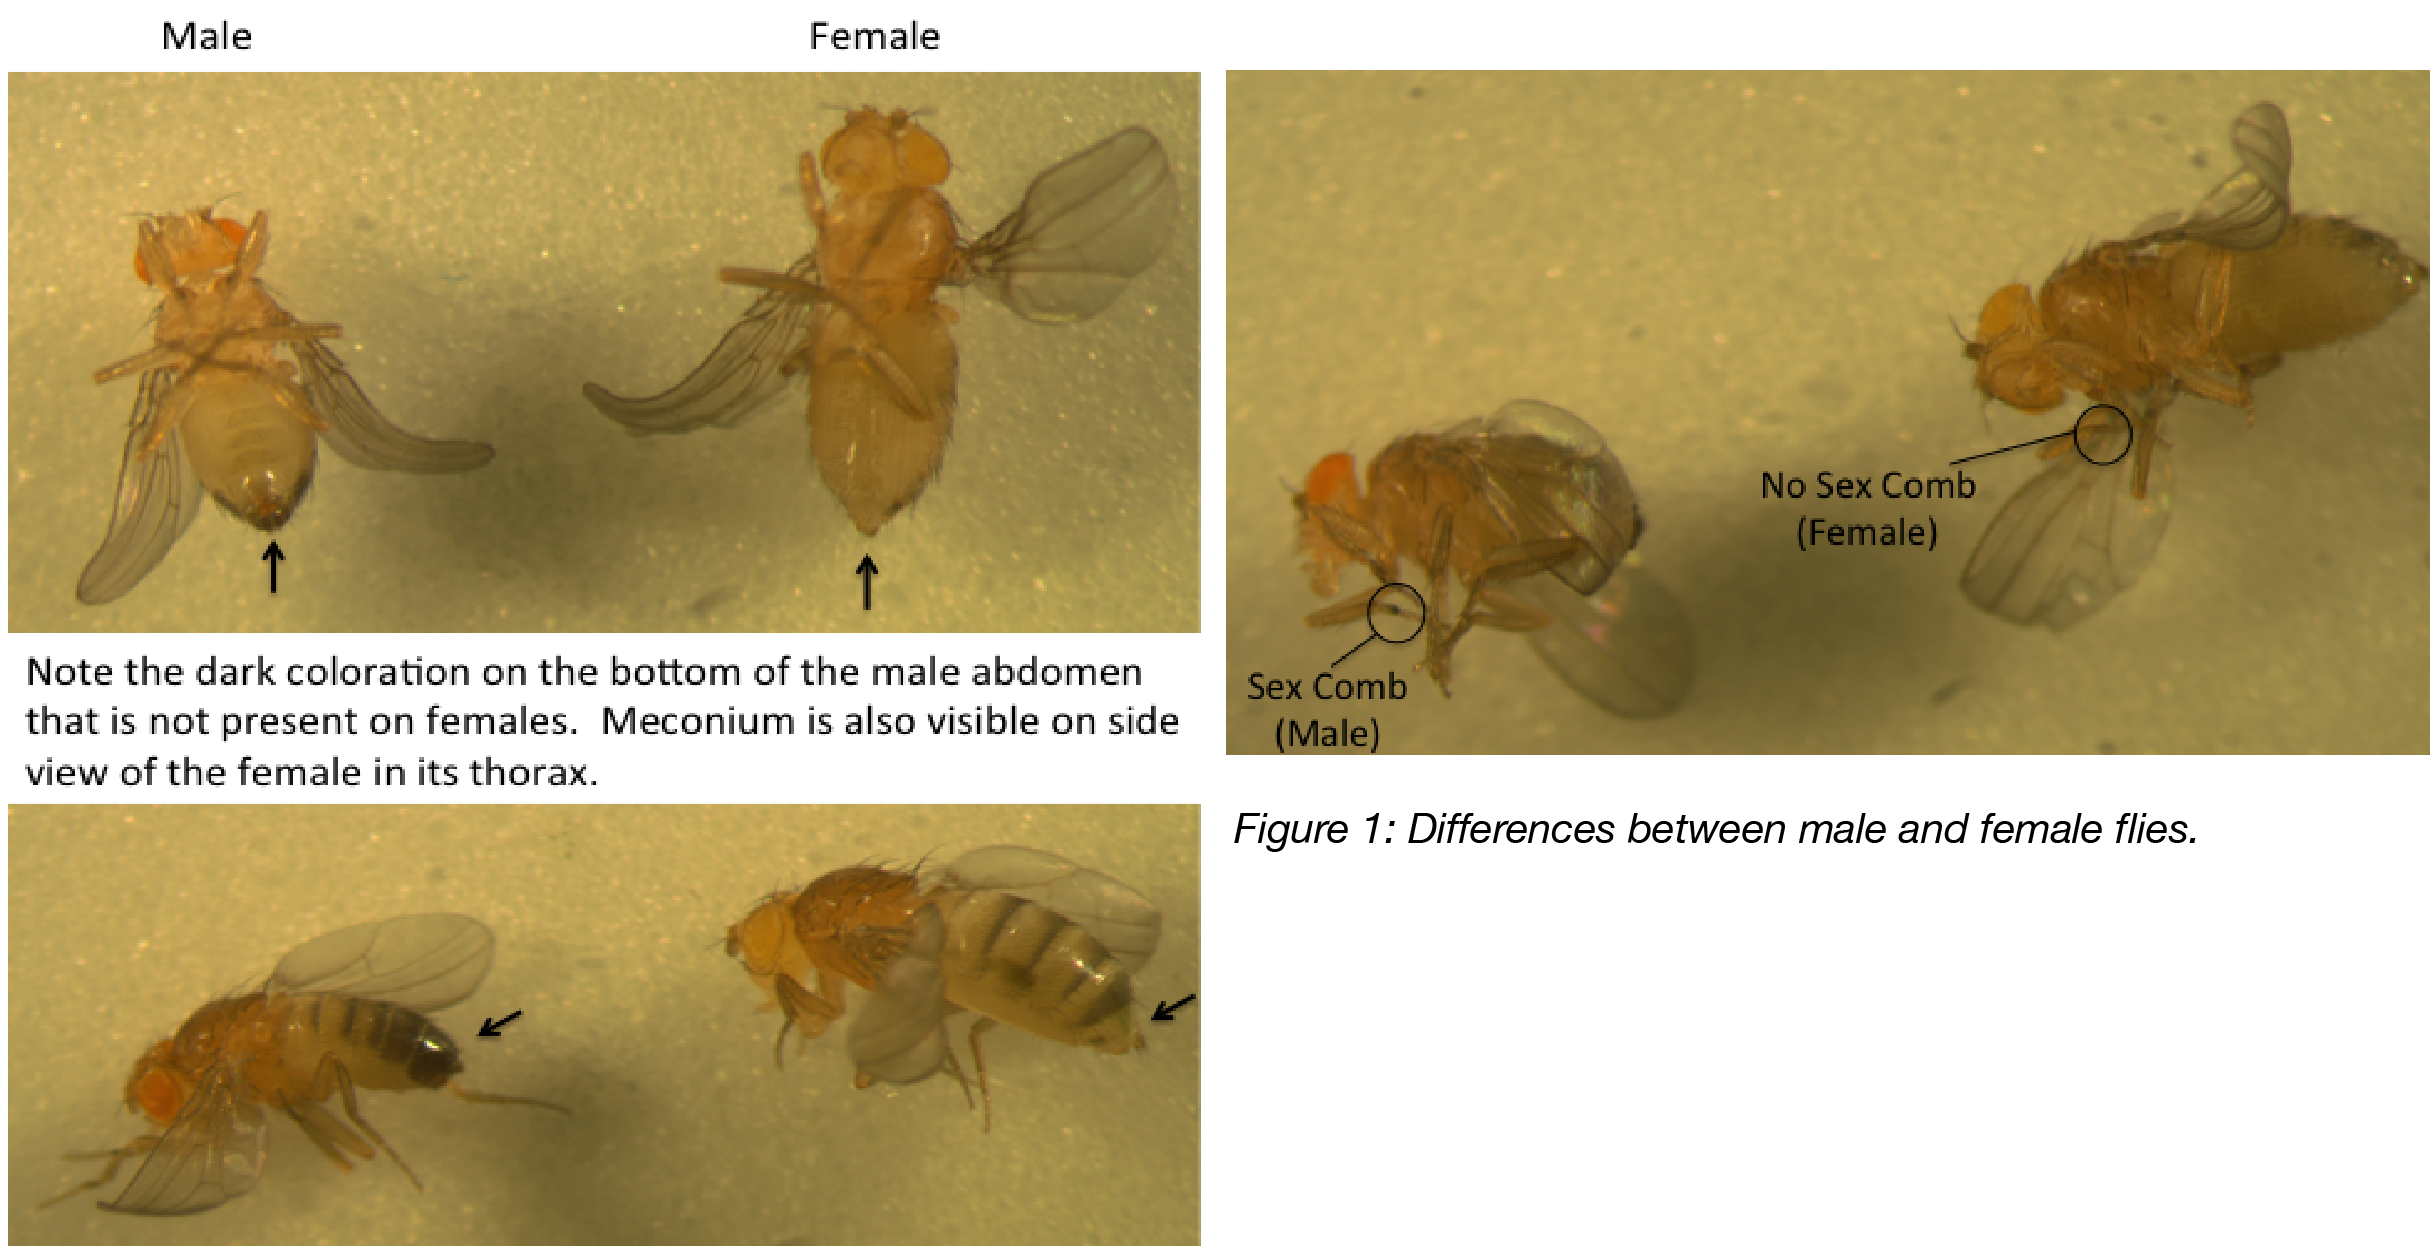 Male and Female Flies-01.png